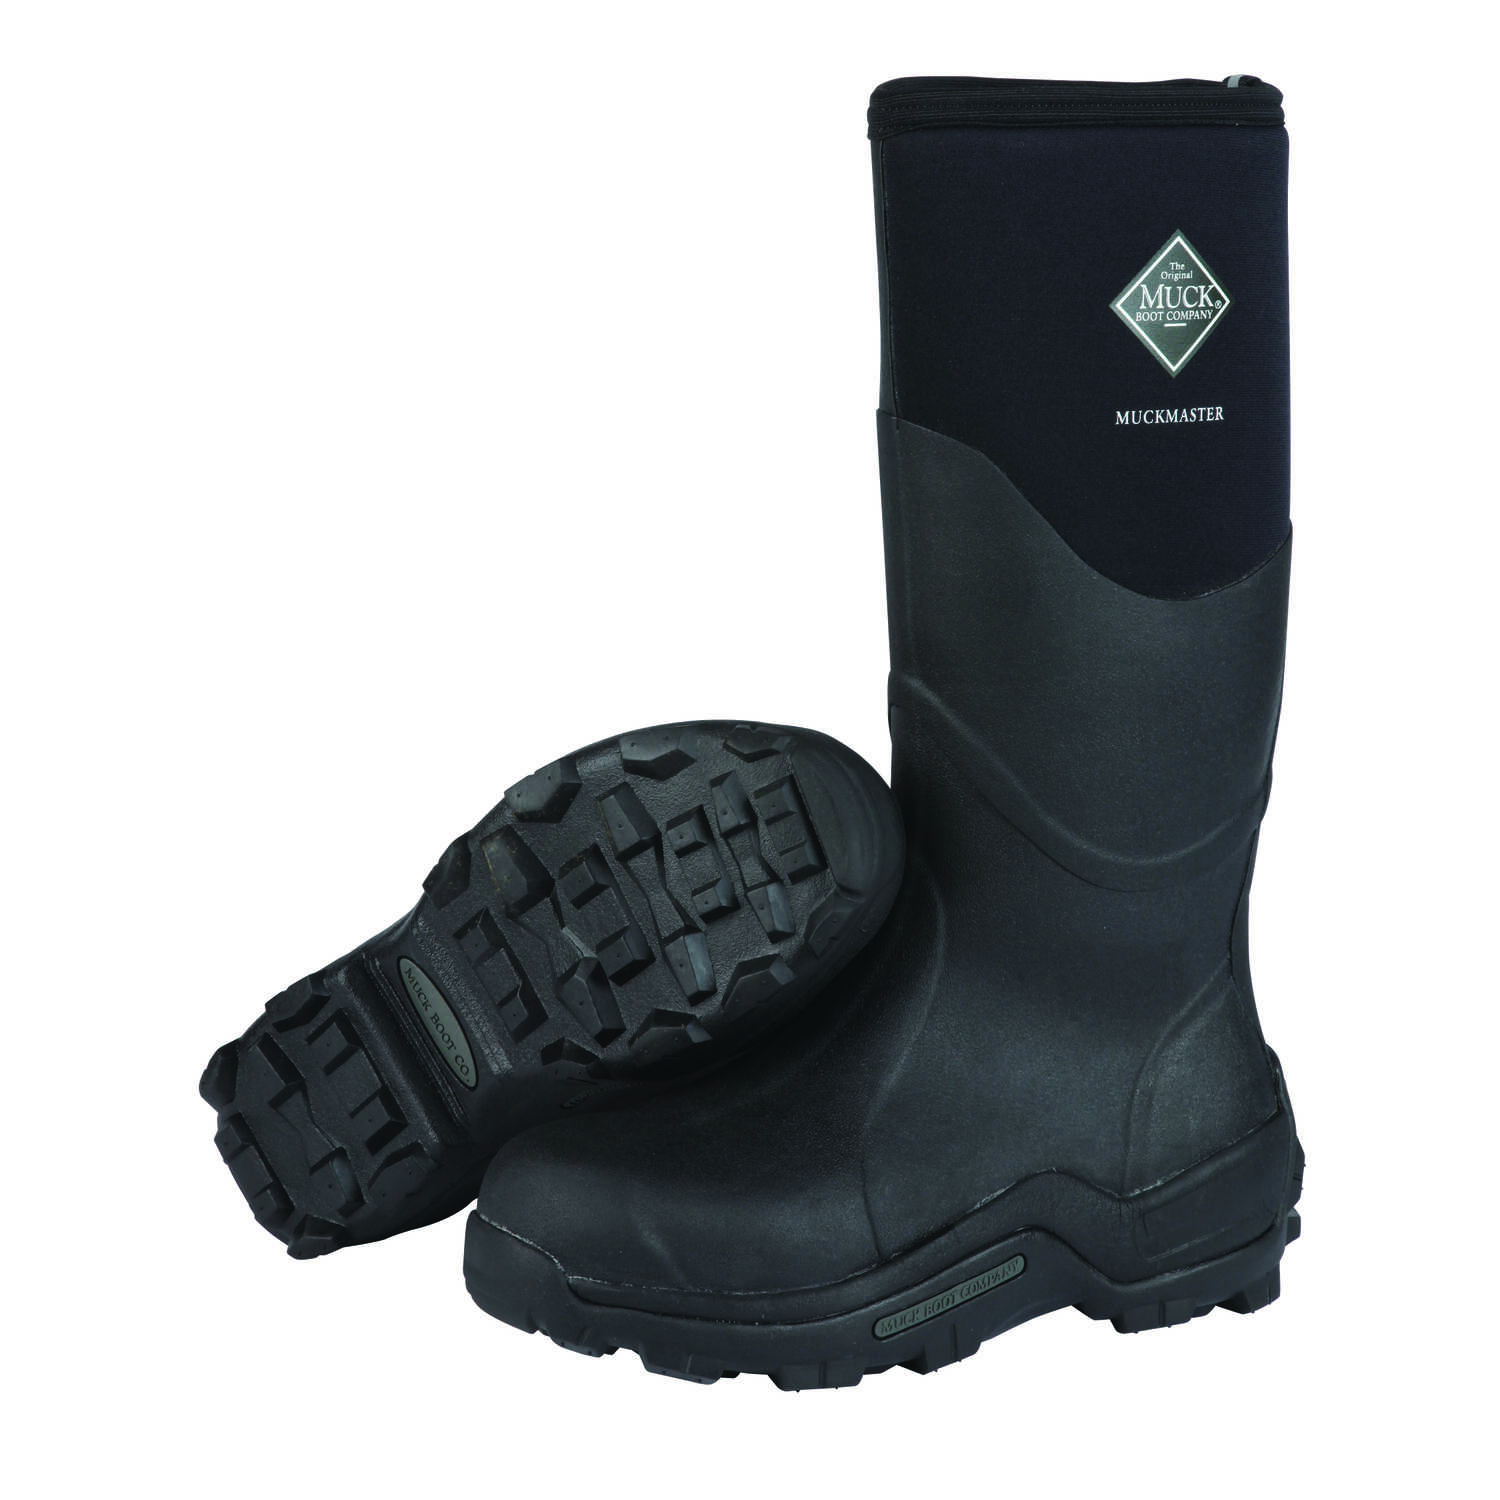 The Original Muck Boot Company  Muckmaster  Men's  Boots  11 US  Black